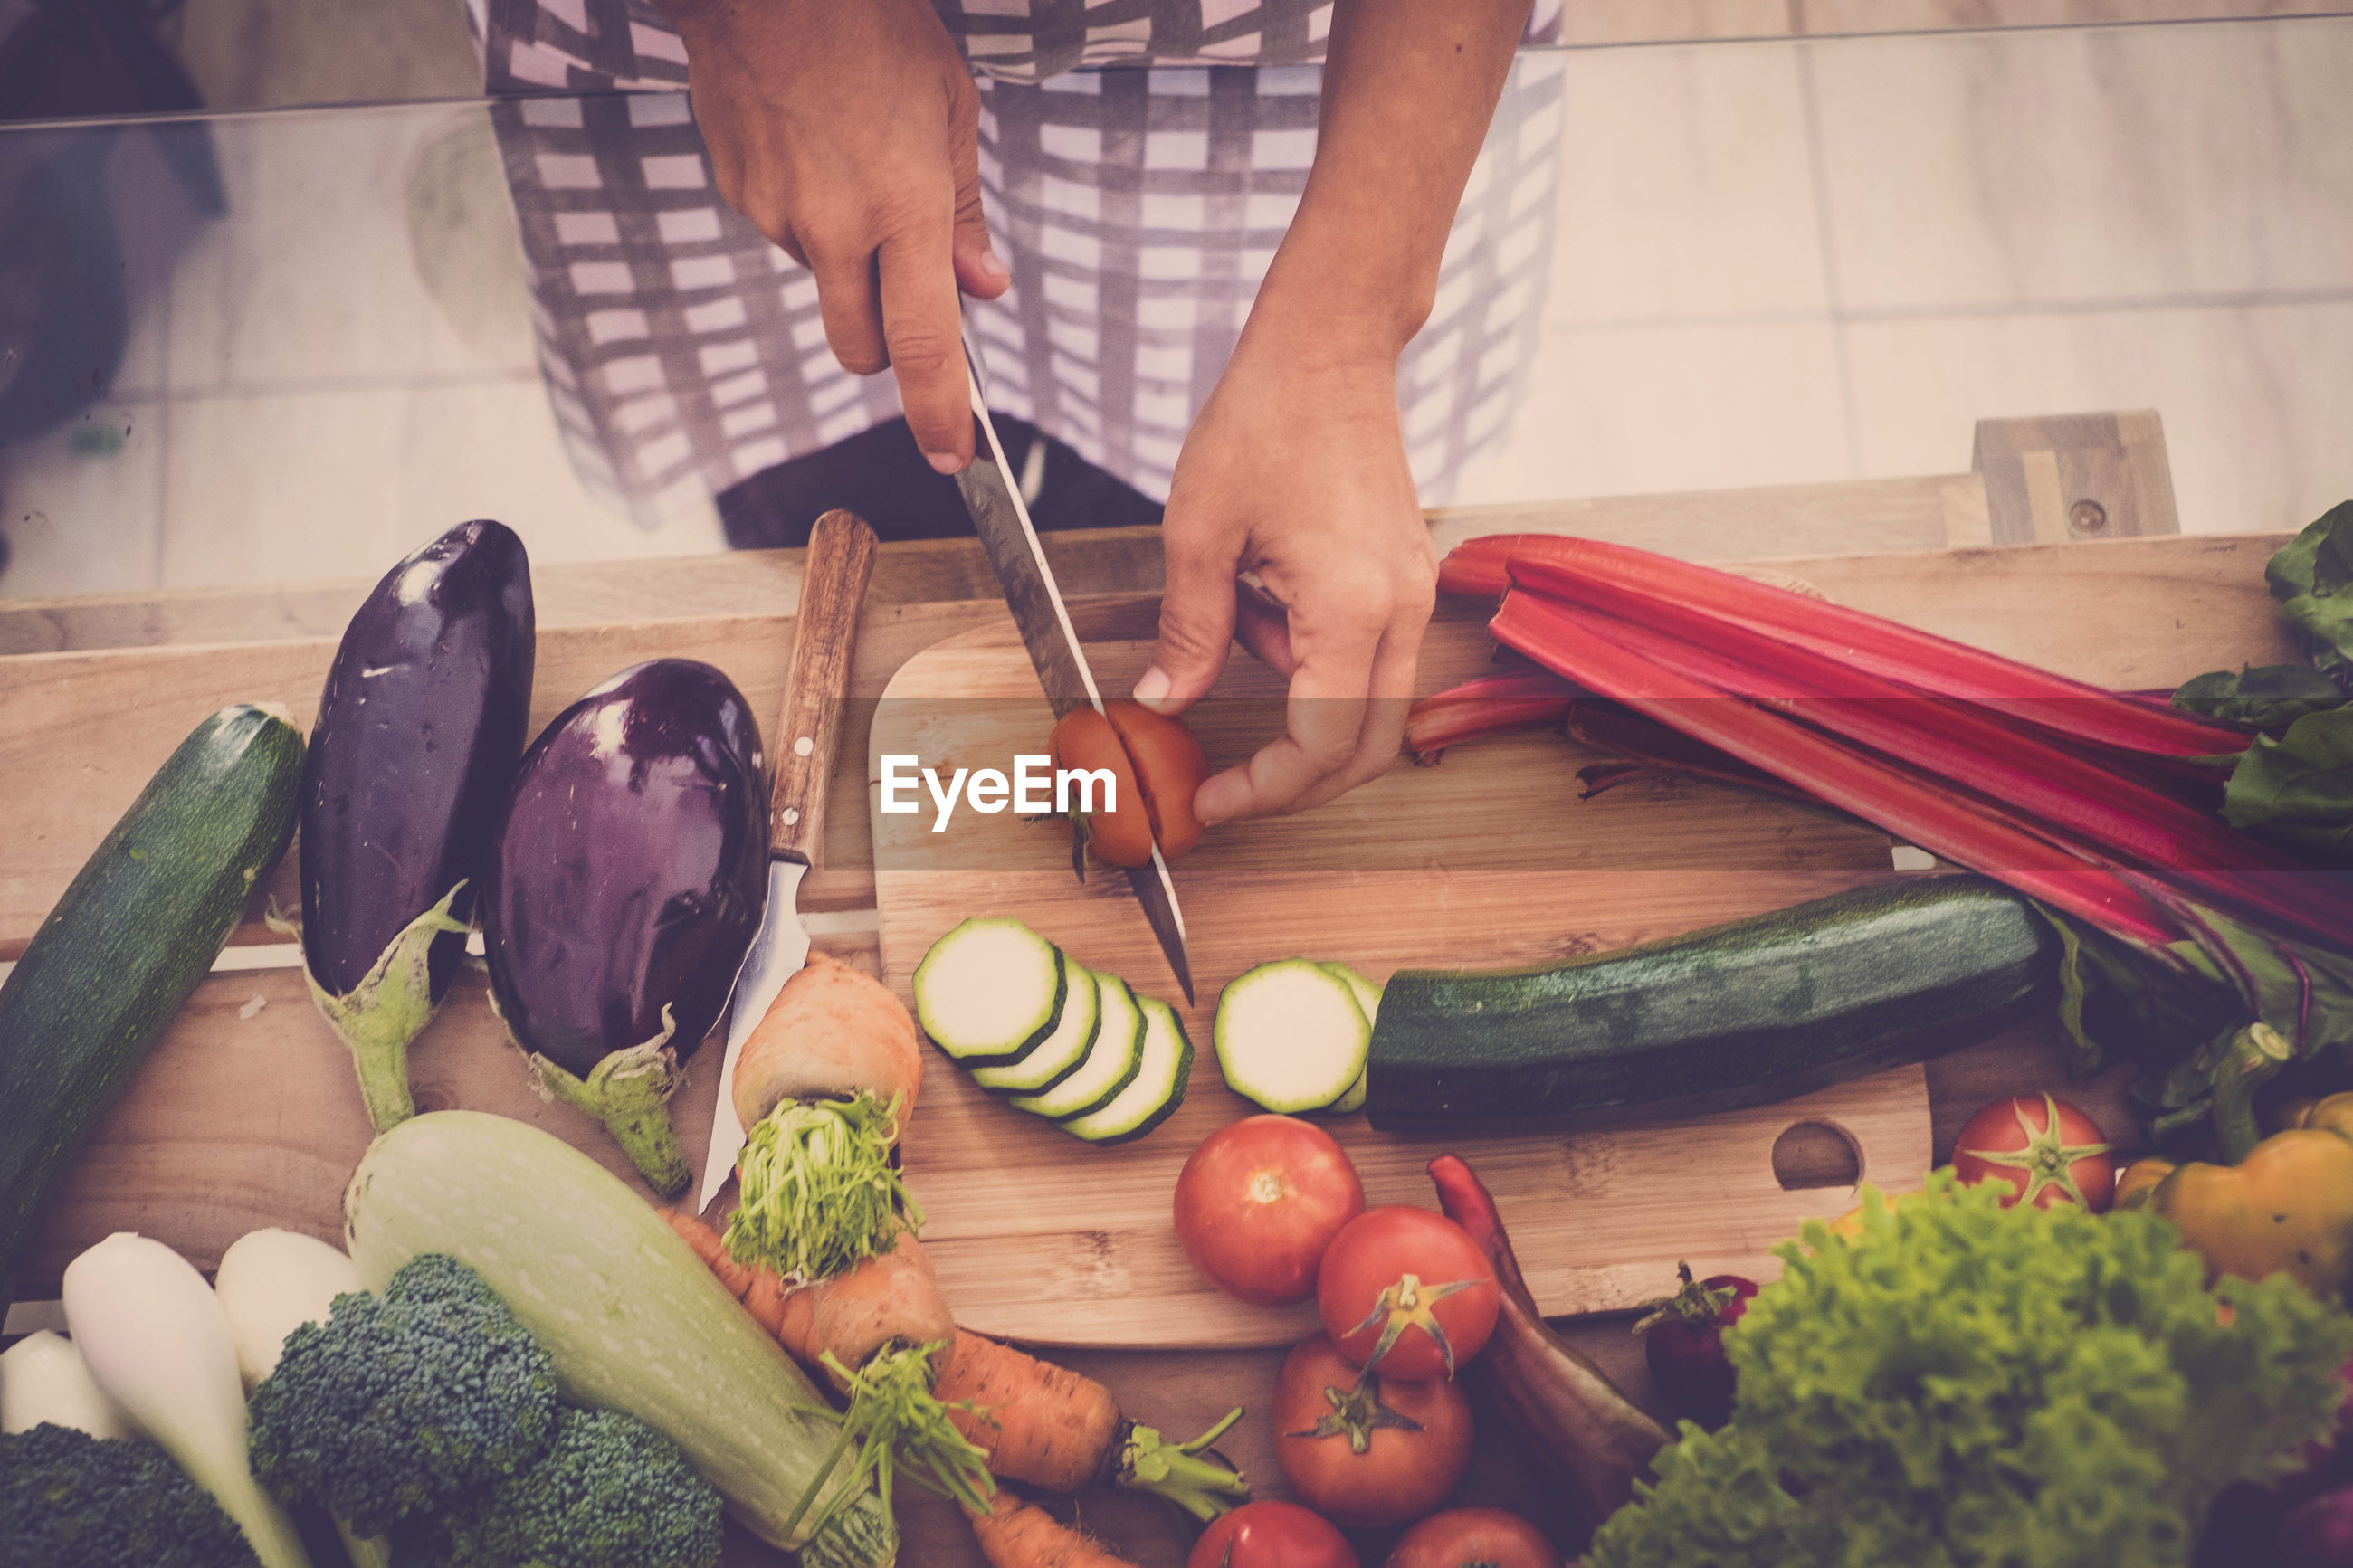 Midsection of person cutting vegetables at home